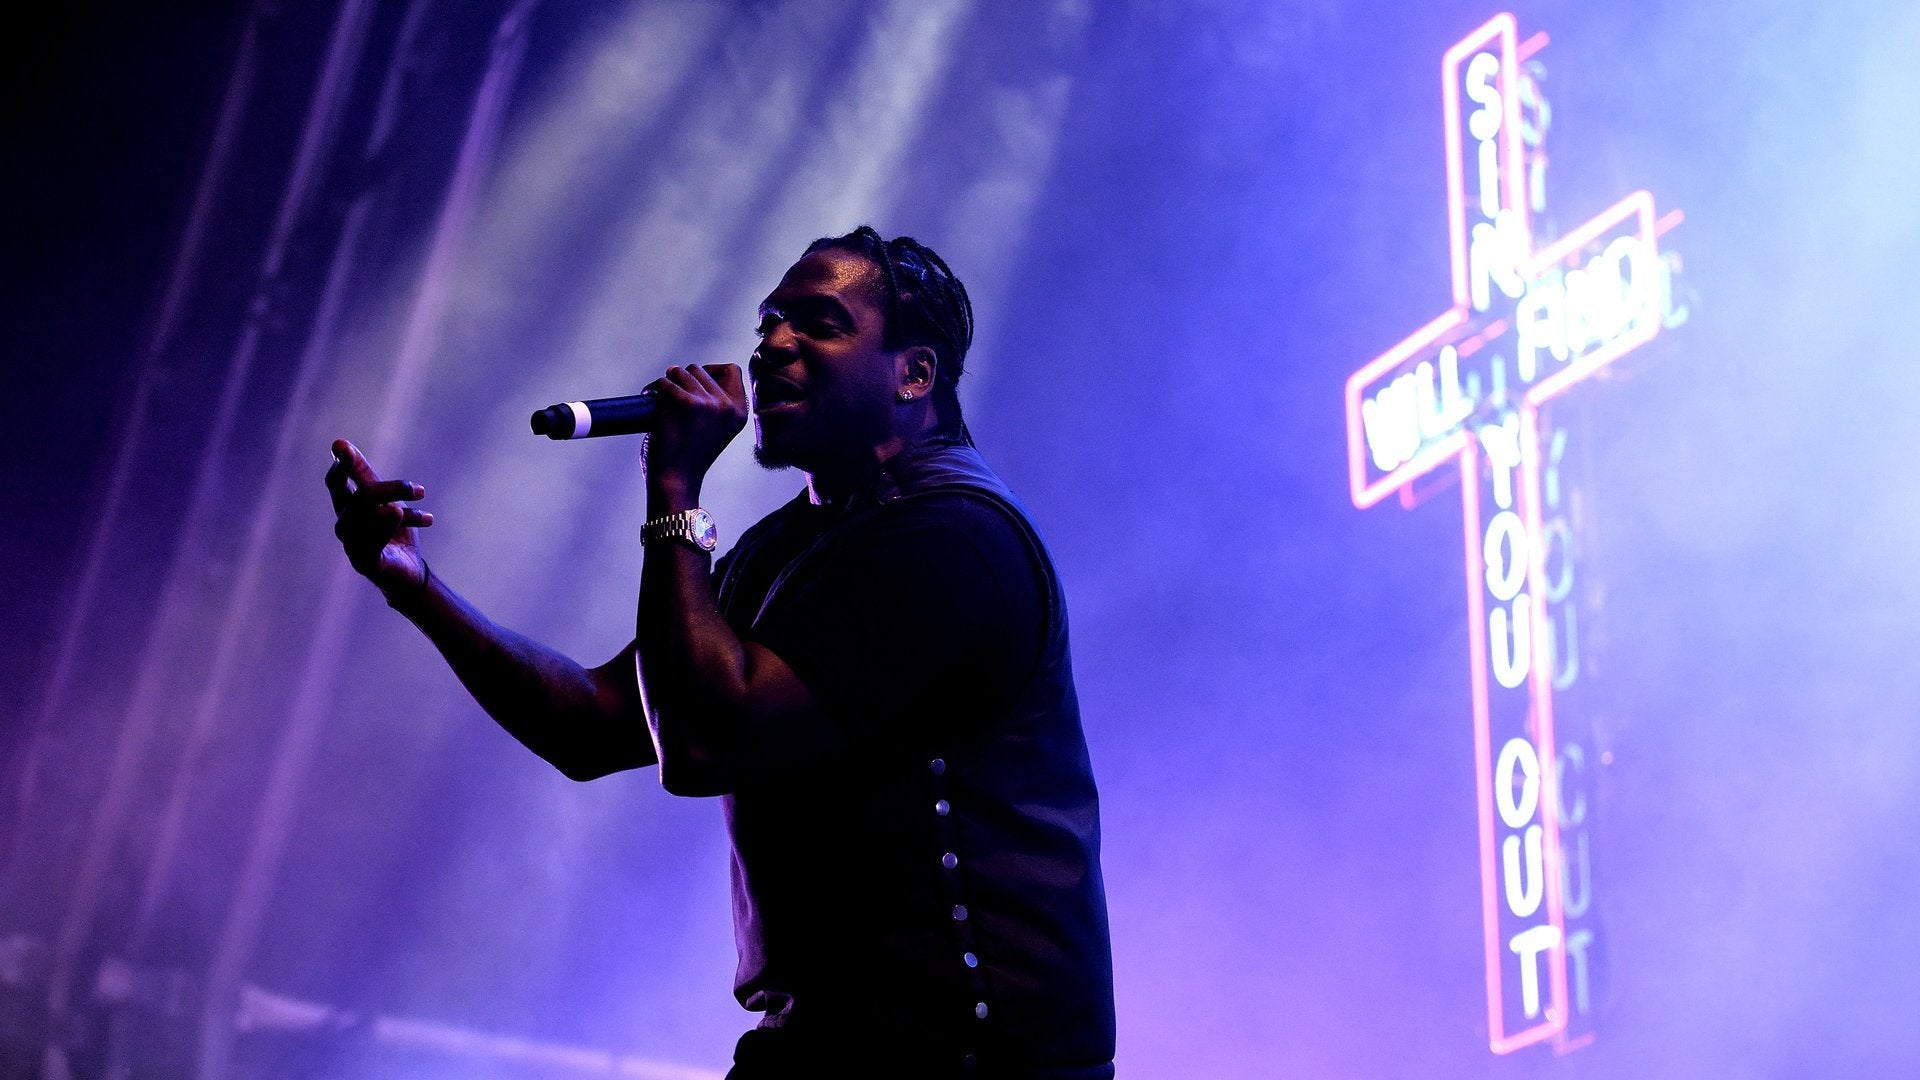 Red Bull Music Academy Presents: A Conversation With Pusha T